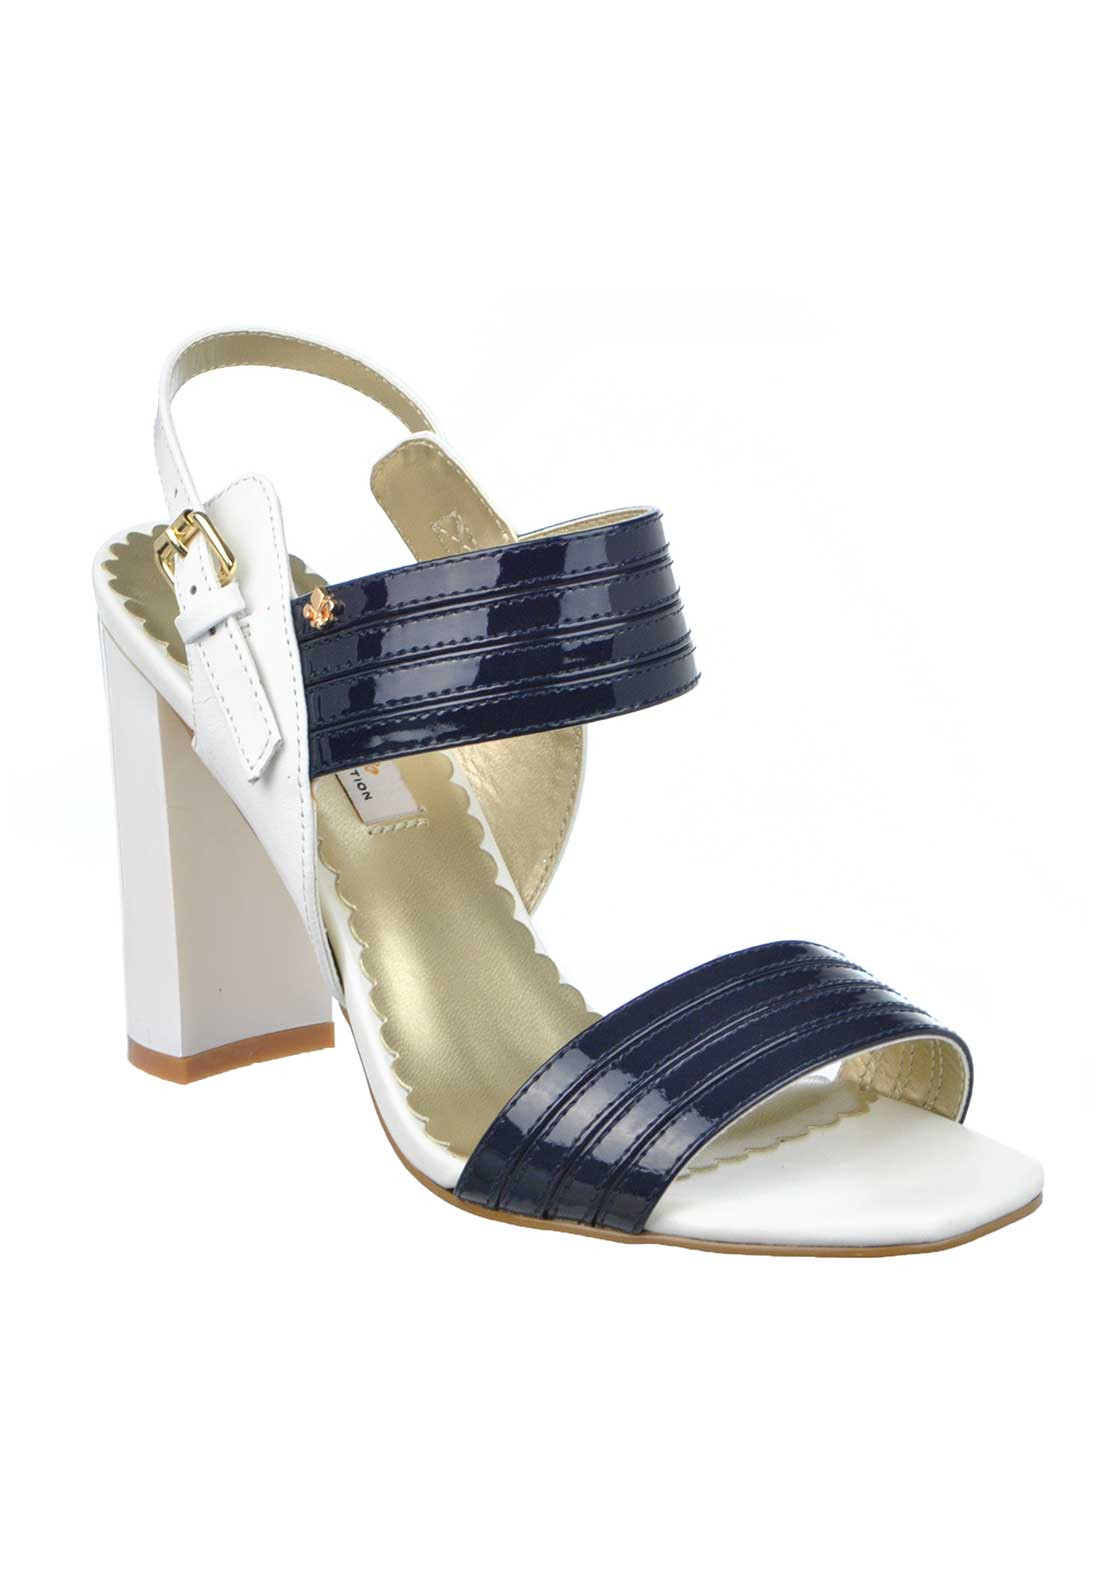 Amy Huberman Bourbon Amour Leather Sandal